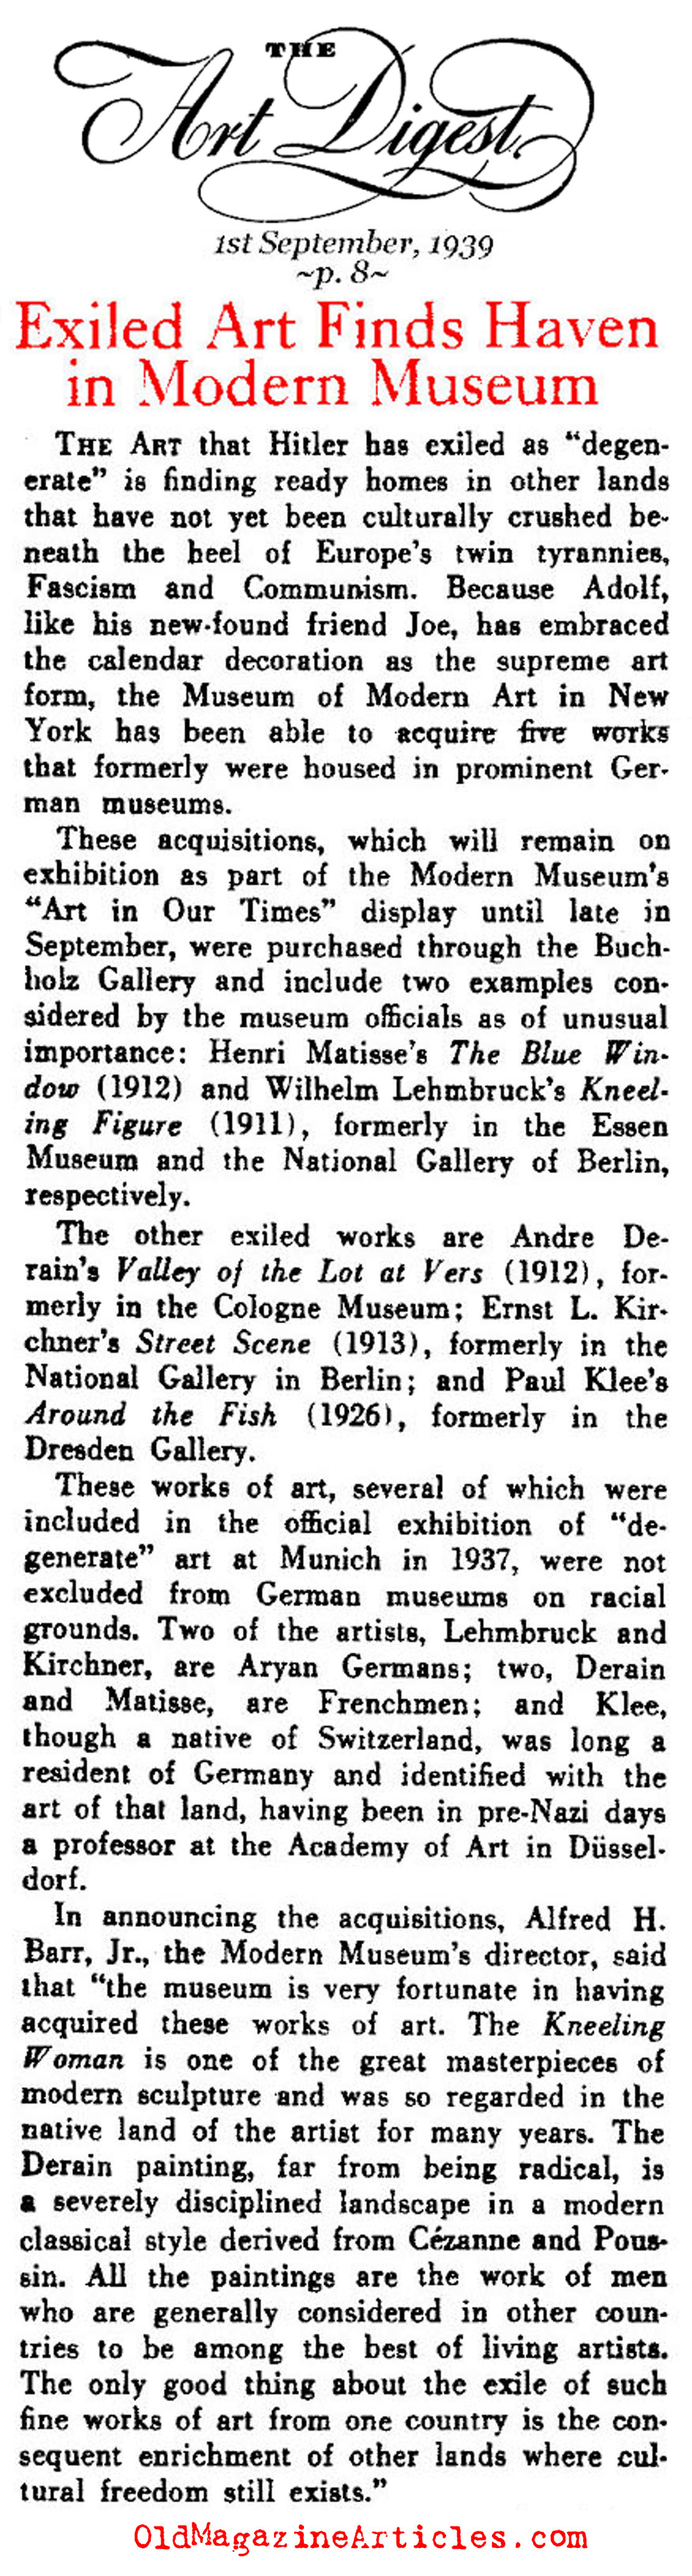 MoMA Purchased Paintings from the Degenerate Art Exhibit<BR>(Art Digest, 1939)